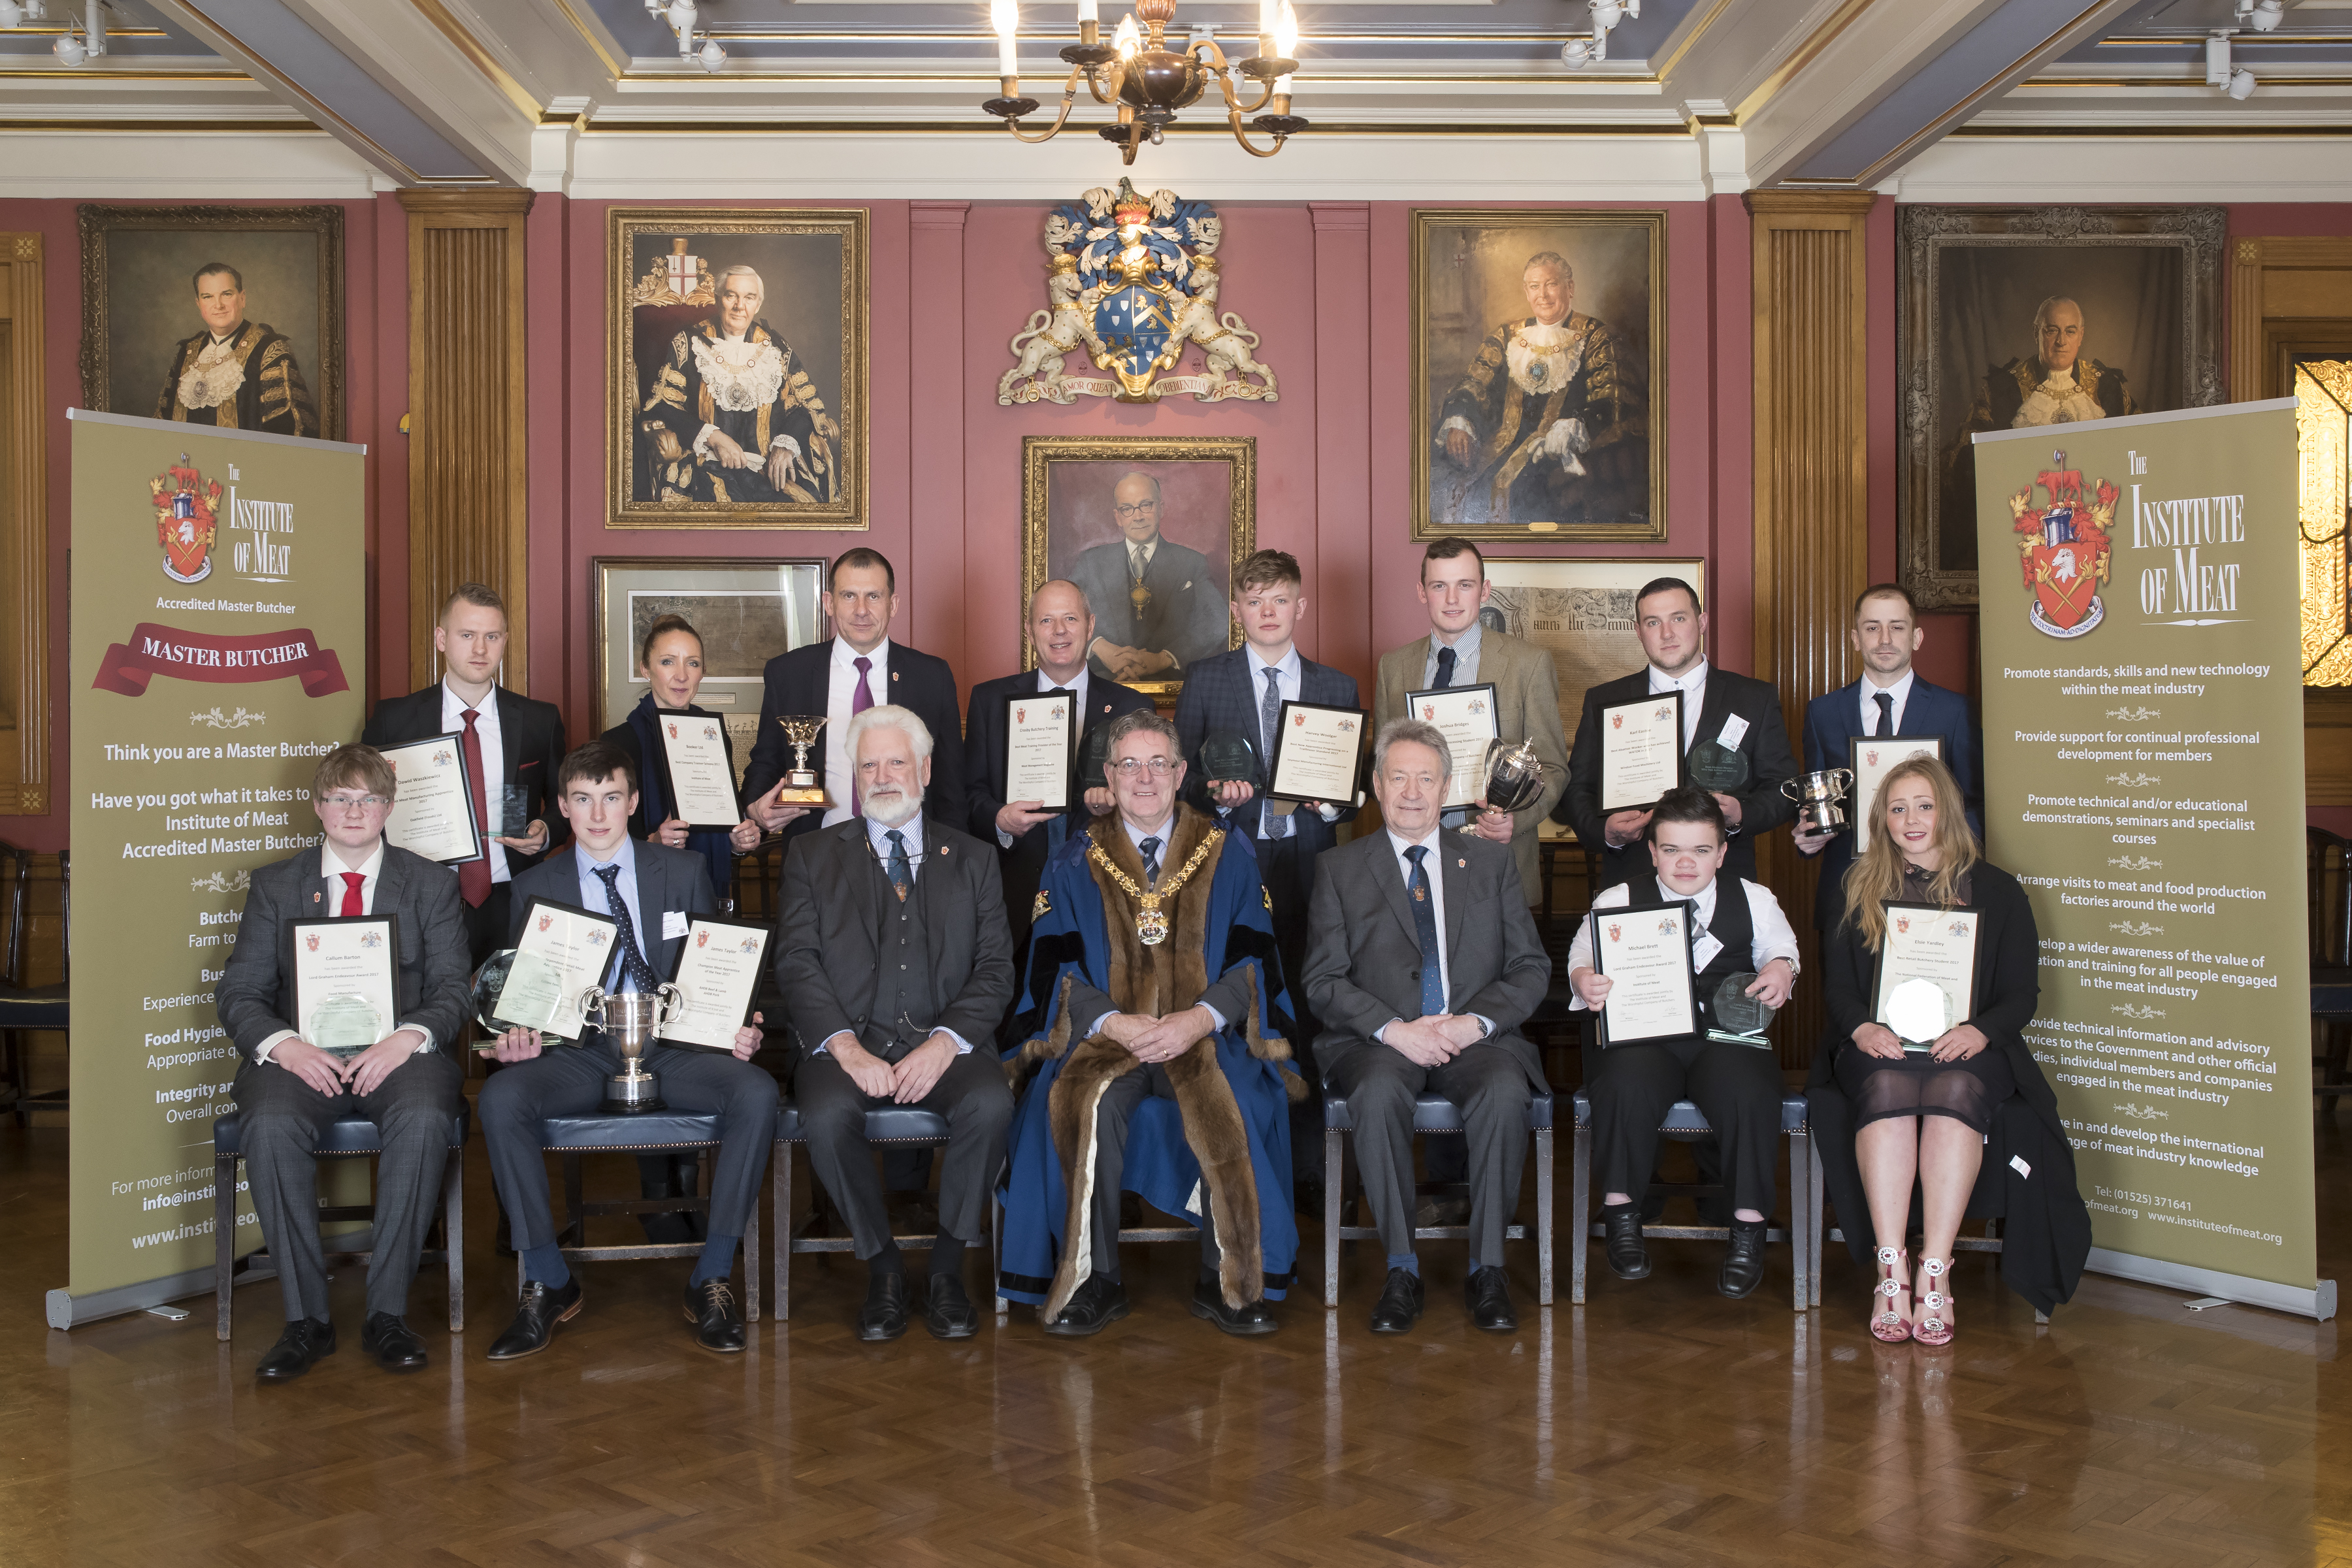 Institute of Meat Prize Winners at 2018 Awards